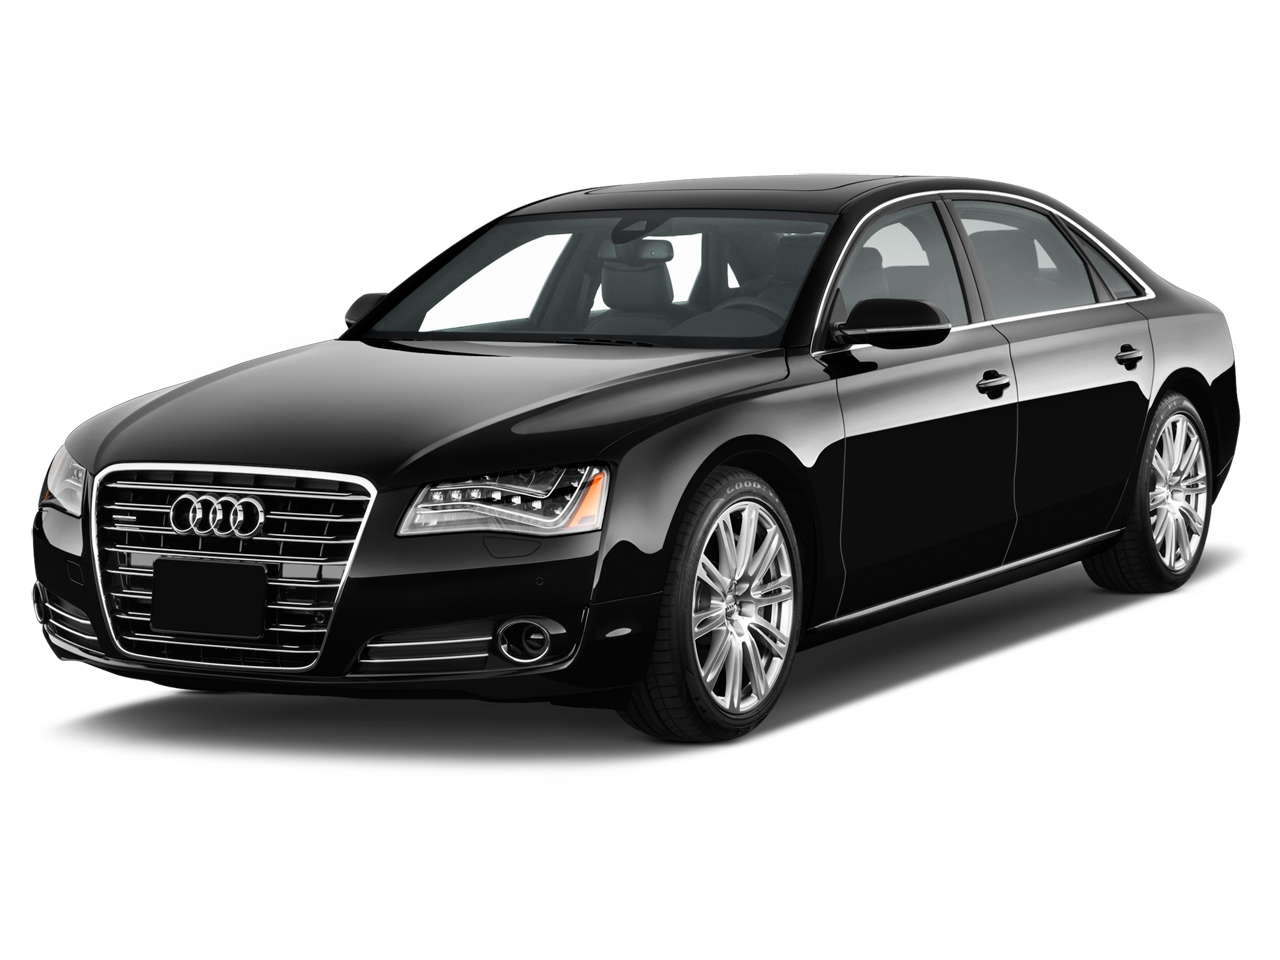 2012 Audi A8 L quattro 4Dr Sedan Packages | New 2012 Audi A8 L ...